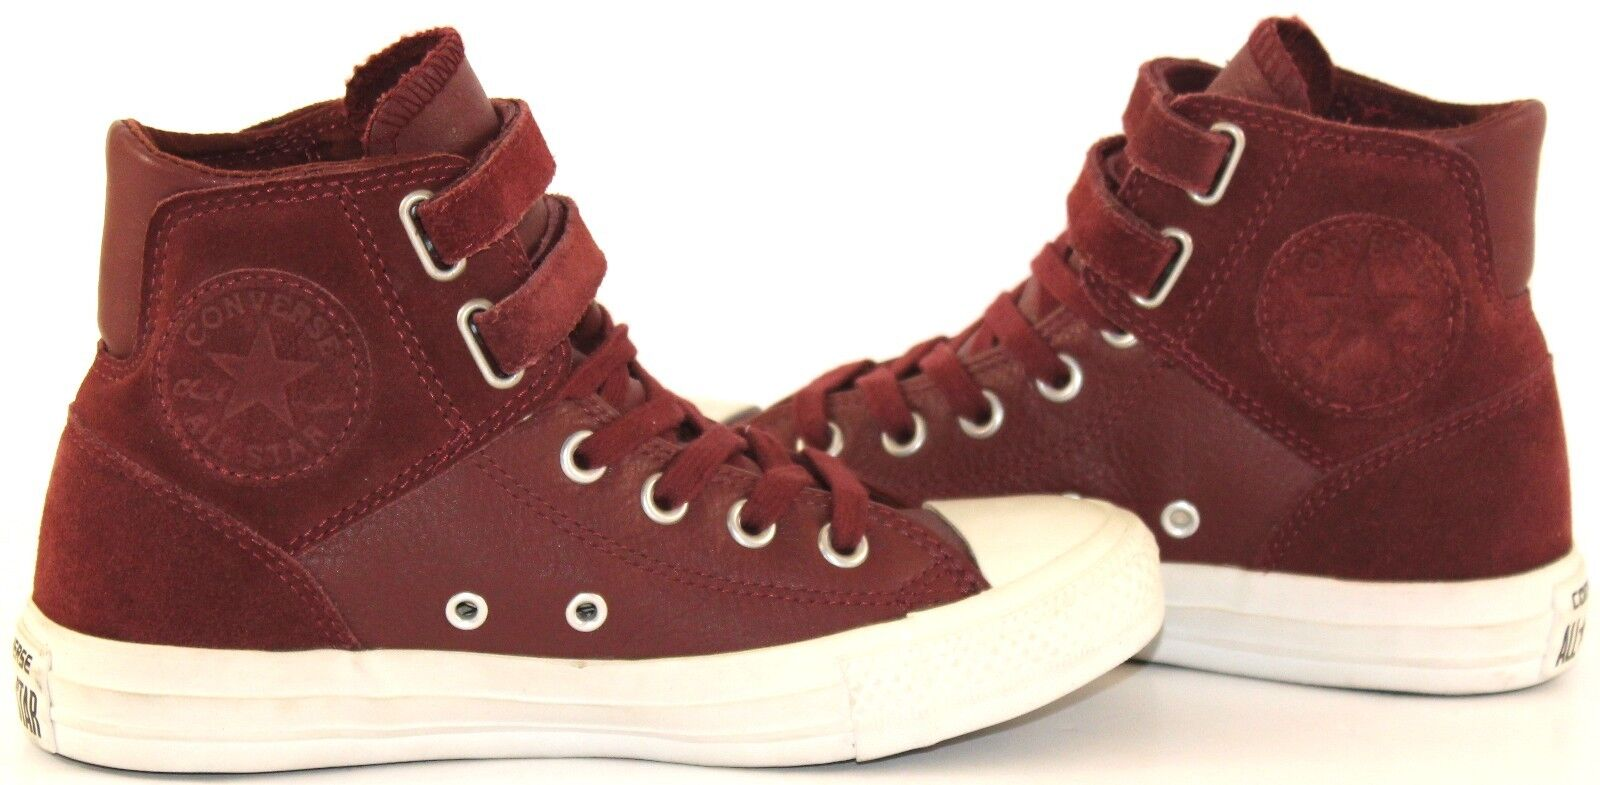 Converse All Star Chuck Taylor Women's Two Strap Leather Leather Leather Hi tops Burgundy 0ed38f